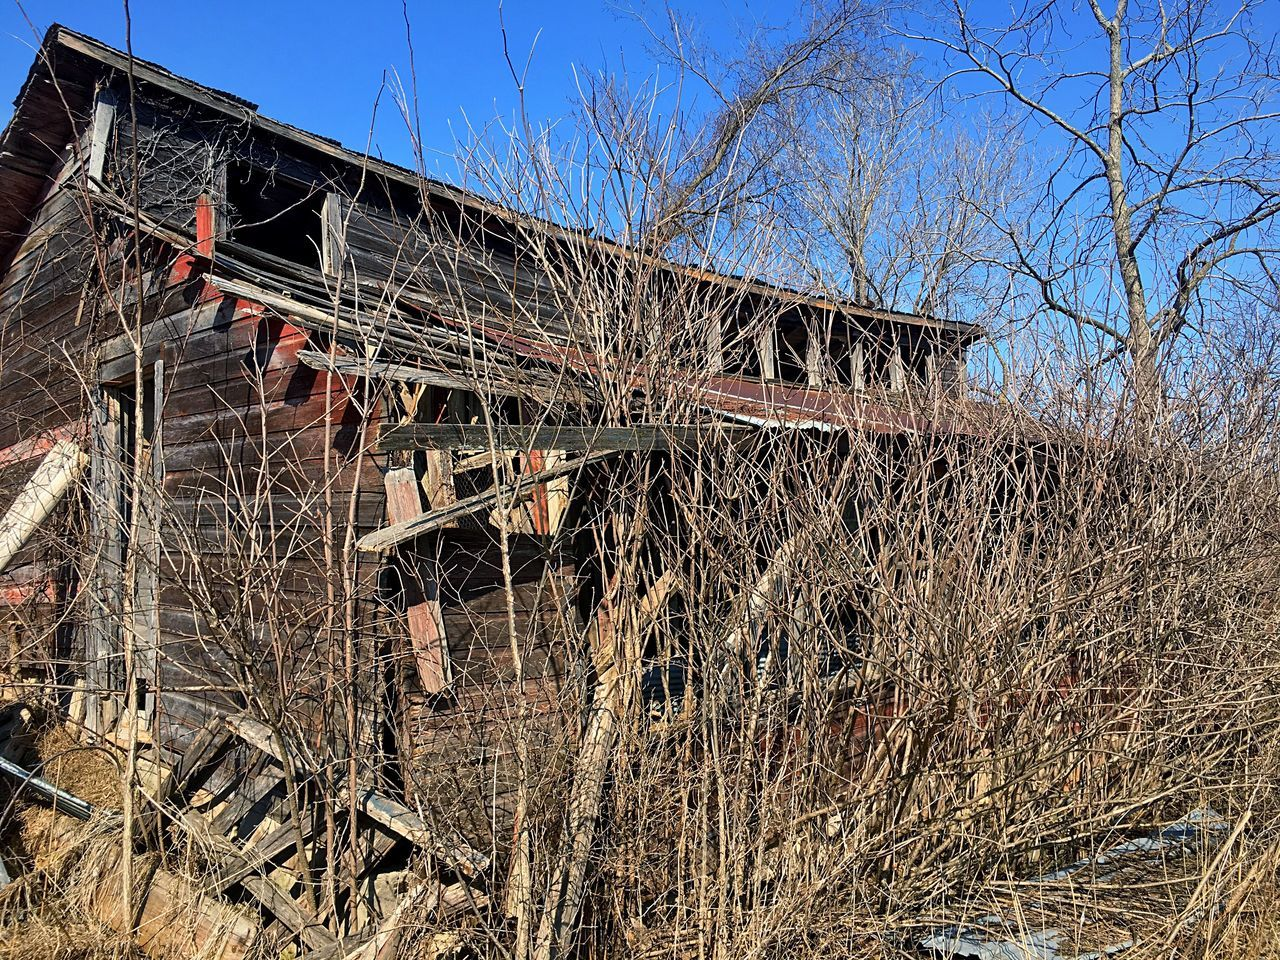 Old chicken coop Chickencoop Chicken Coop Barn Oldbarn Old Barn Wood Barn Wood Built Structure Bare Tree Sky Wisconsin Abandoned Abandoned Buildings Abandoned Barn ABANDON BARNS Abandon Chicken Coop